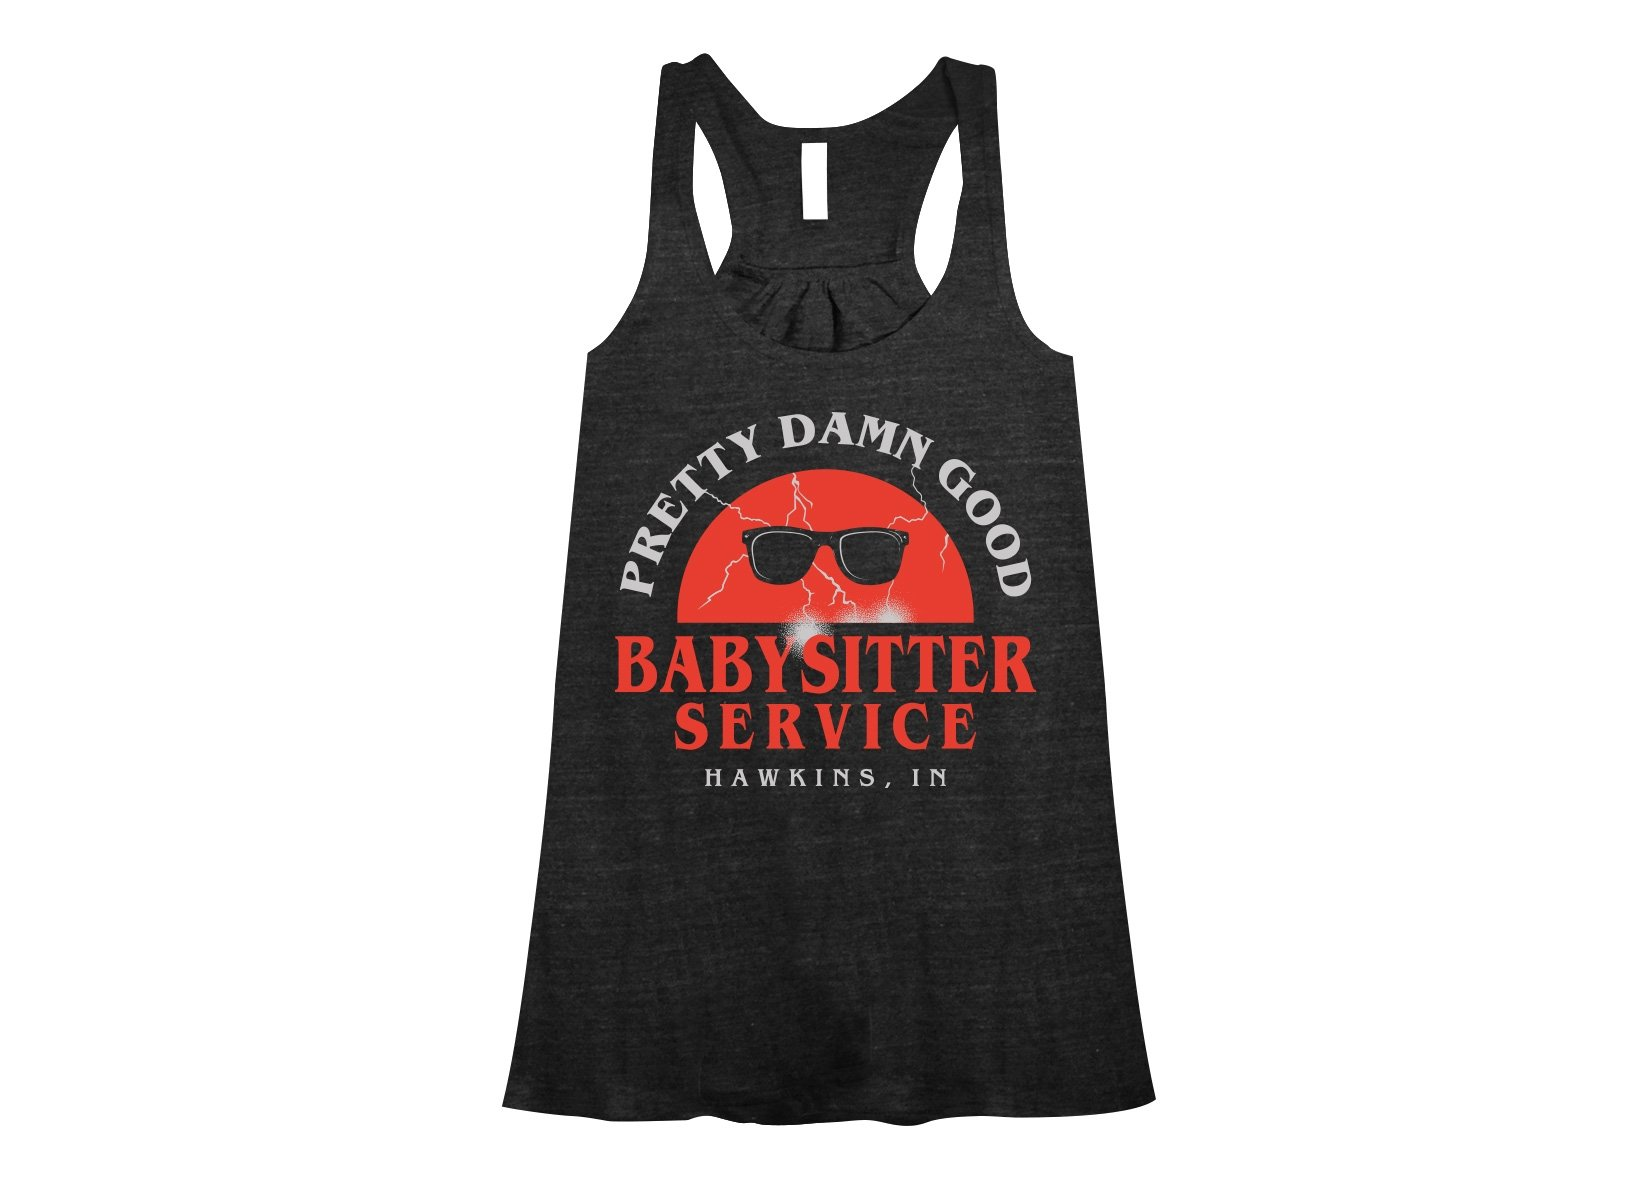 Pretty Damn Good Babysitter Service on Womens Tanks T-Shirt